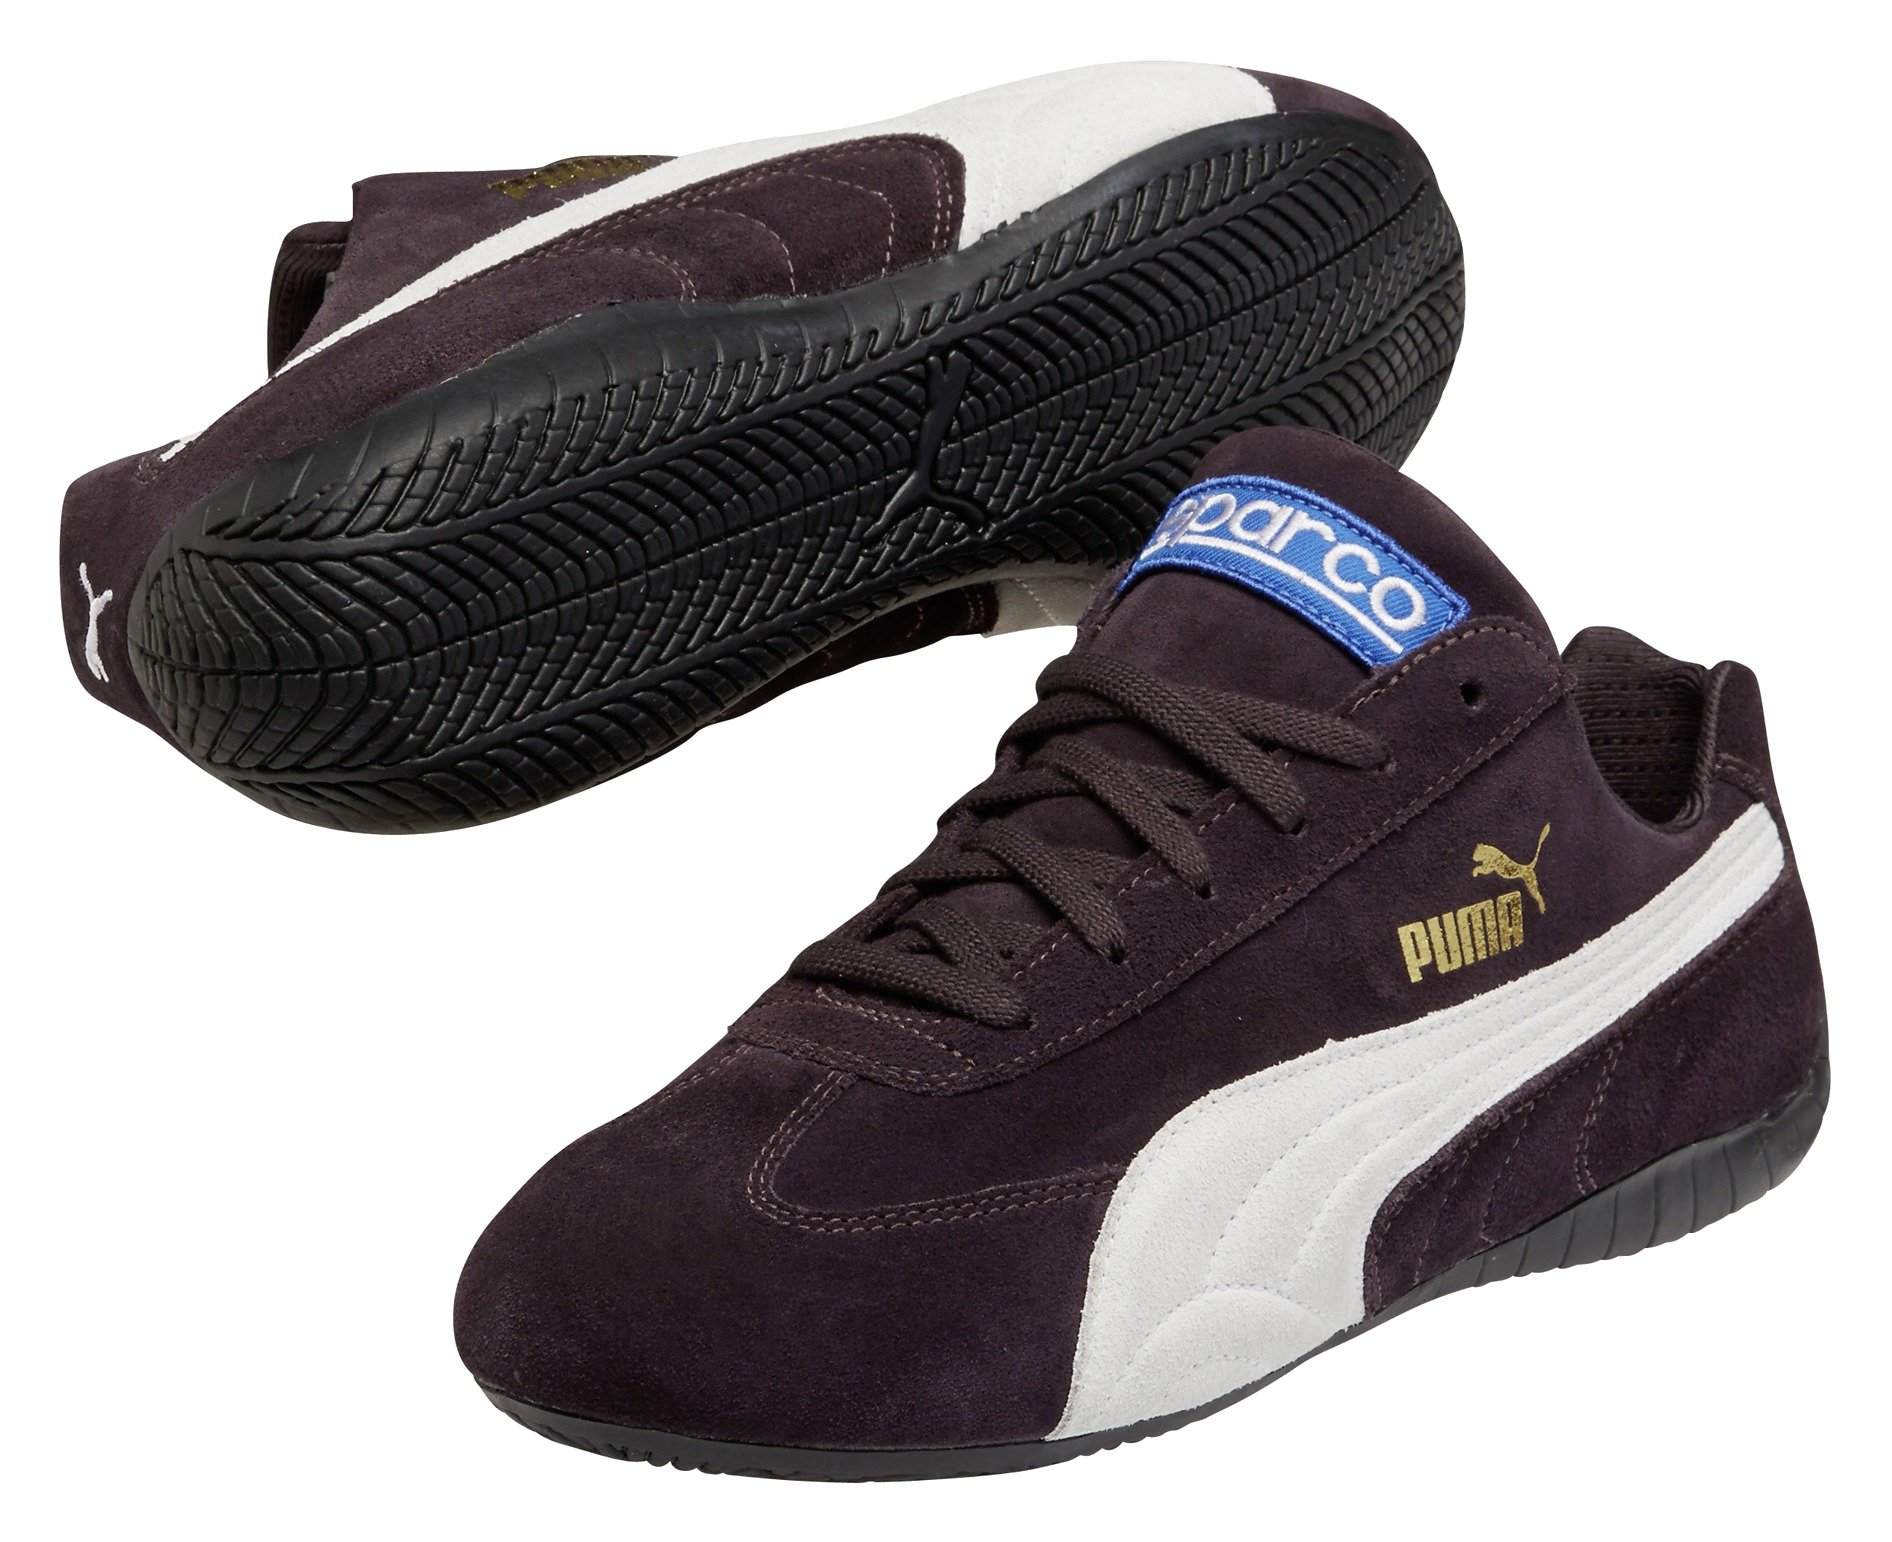 Puma Sparco Shoes Price